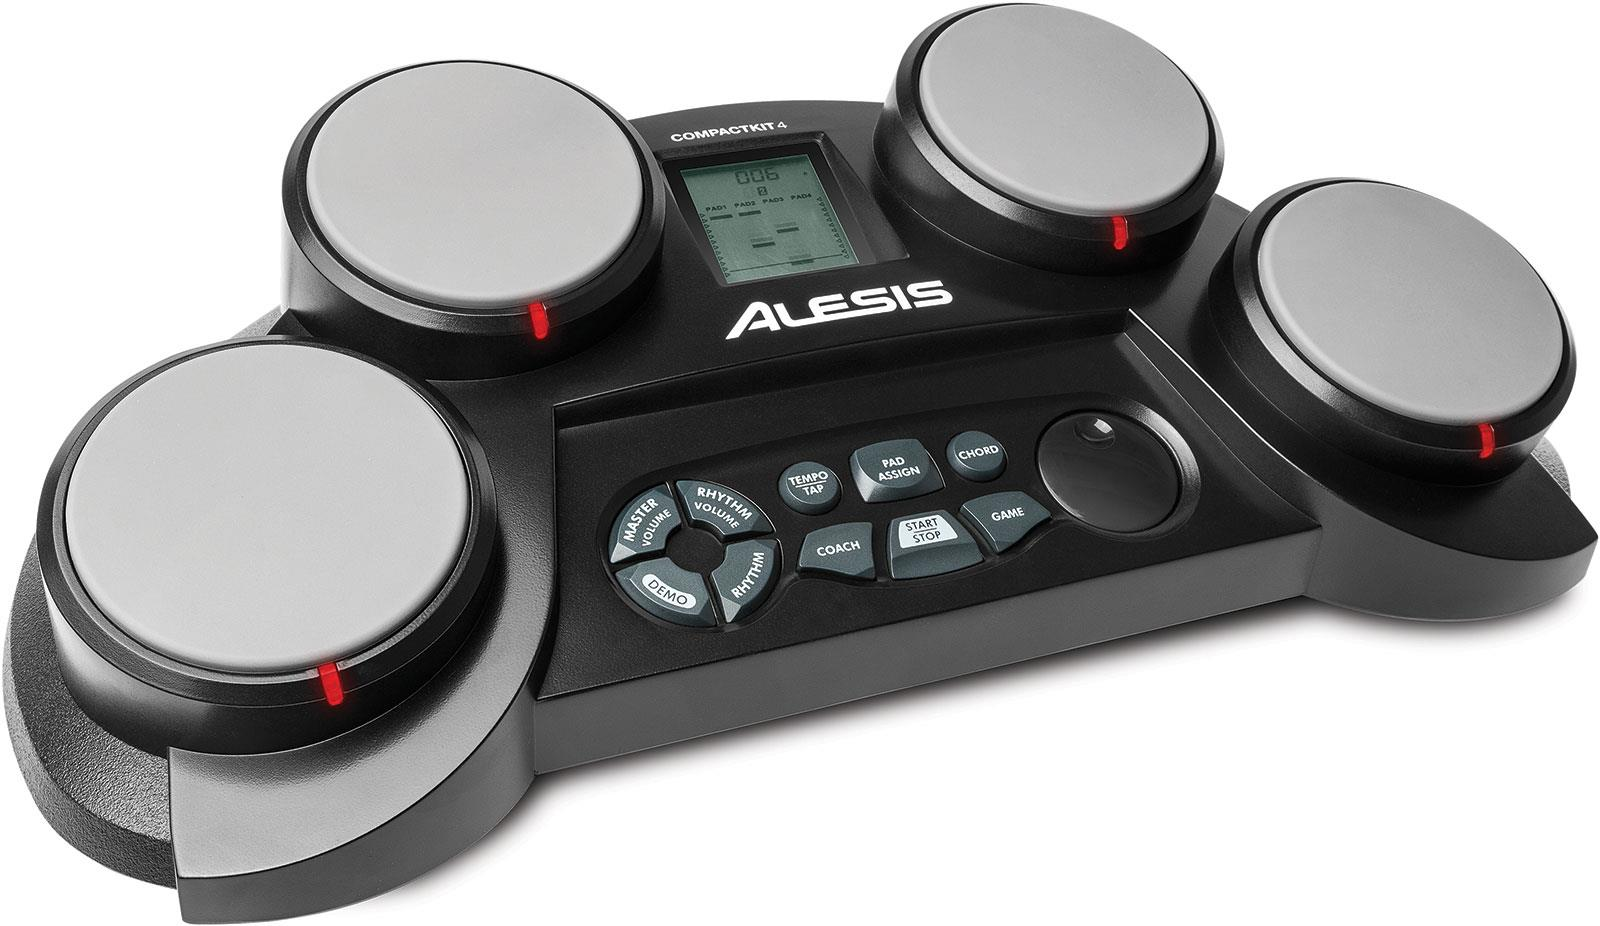 Image of Alesis CompactKit 4 0694318019078